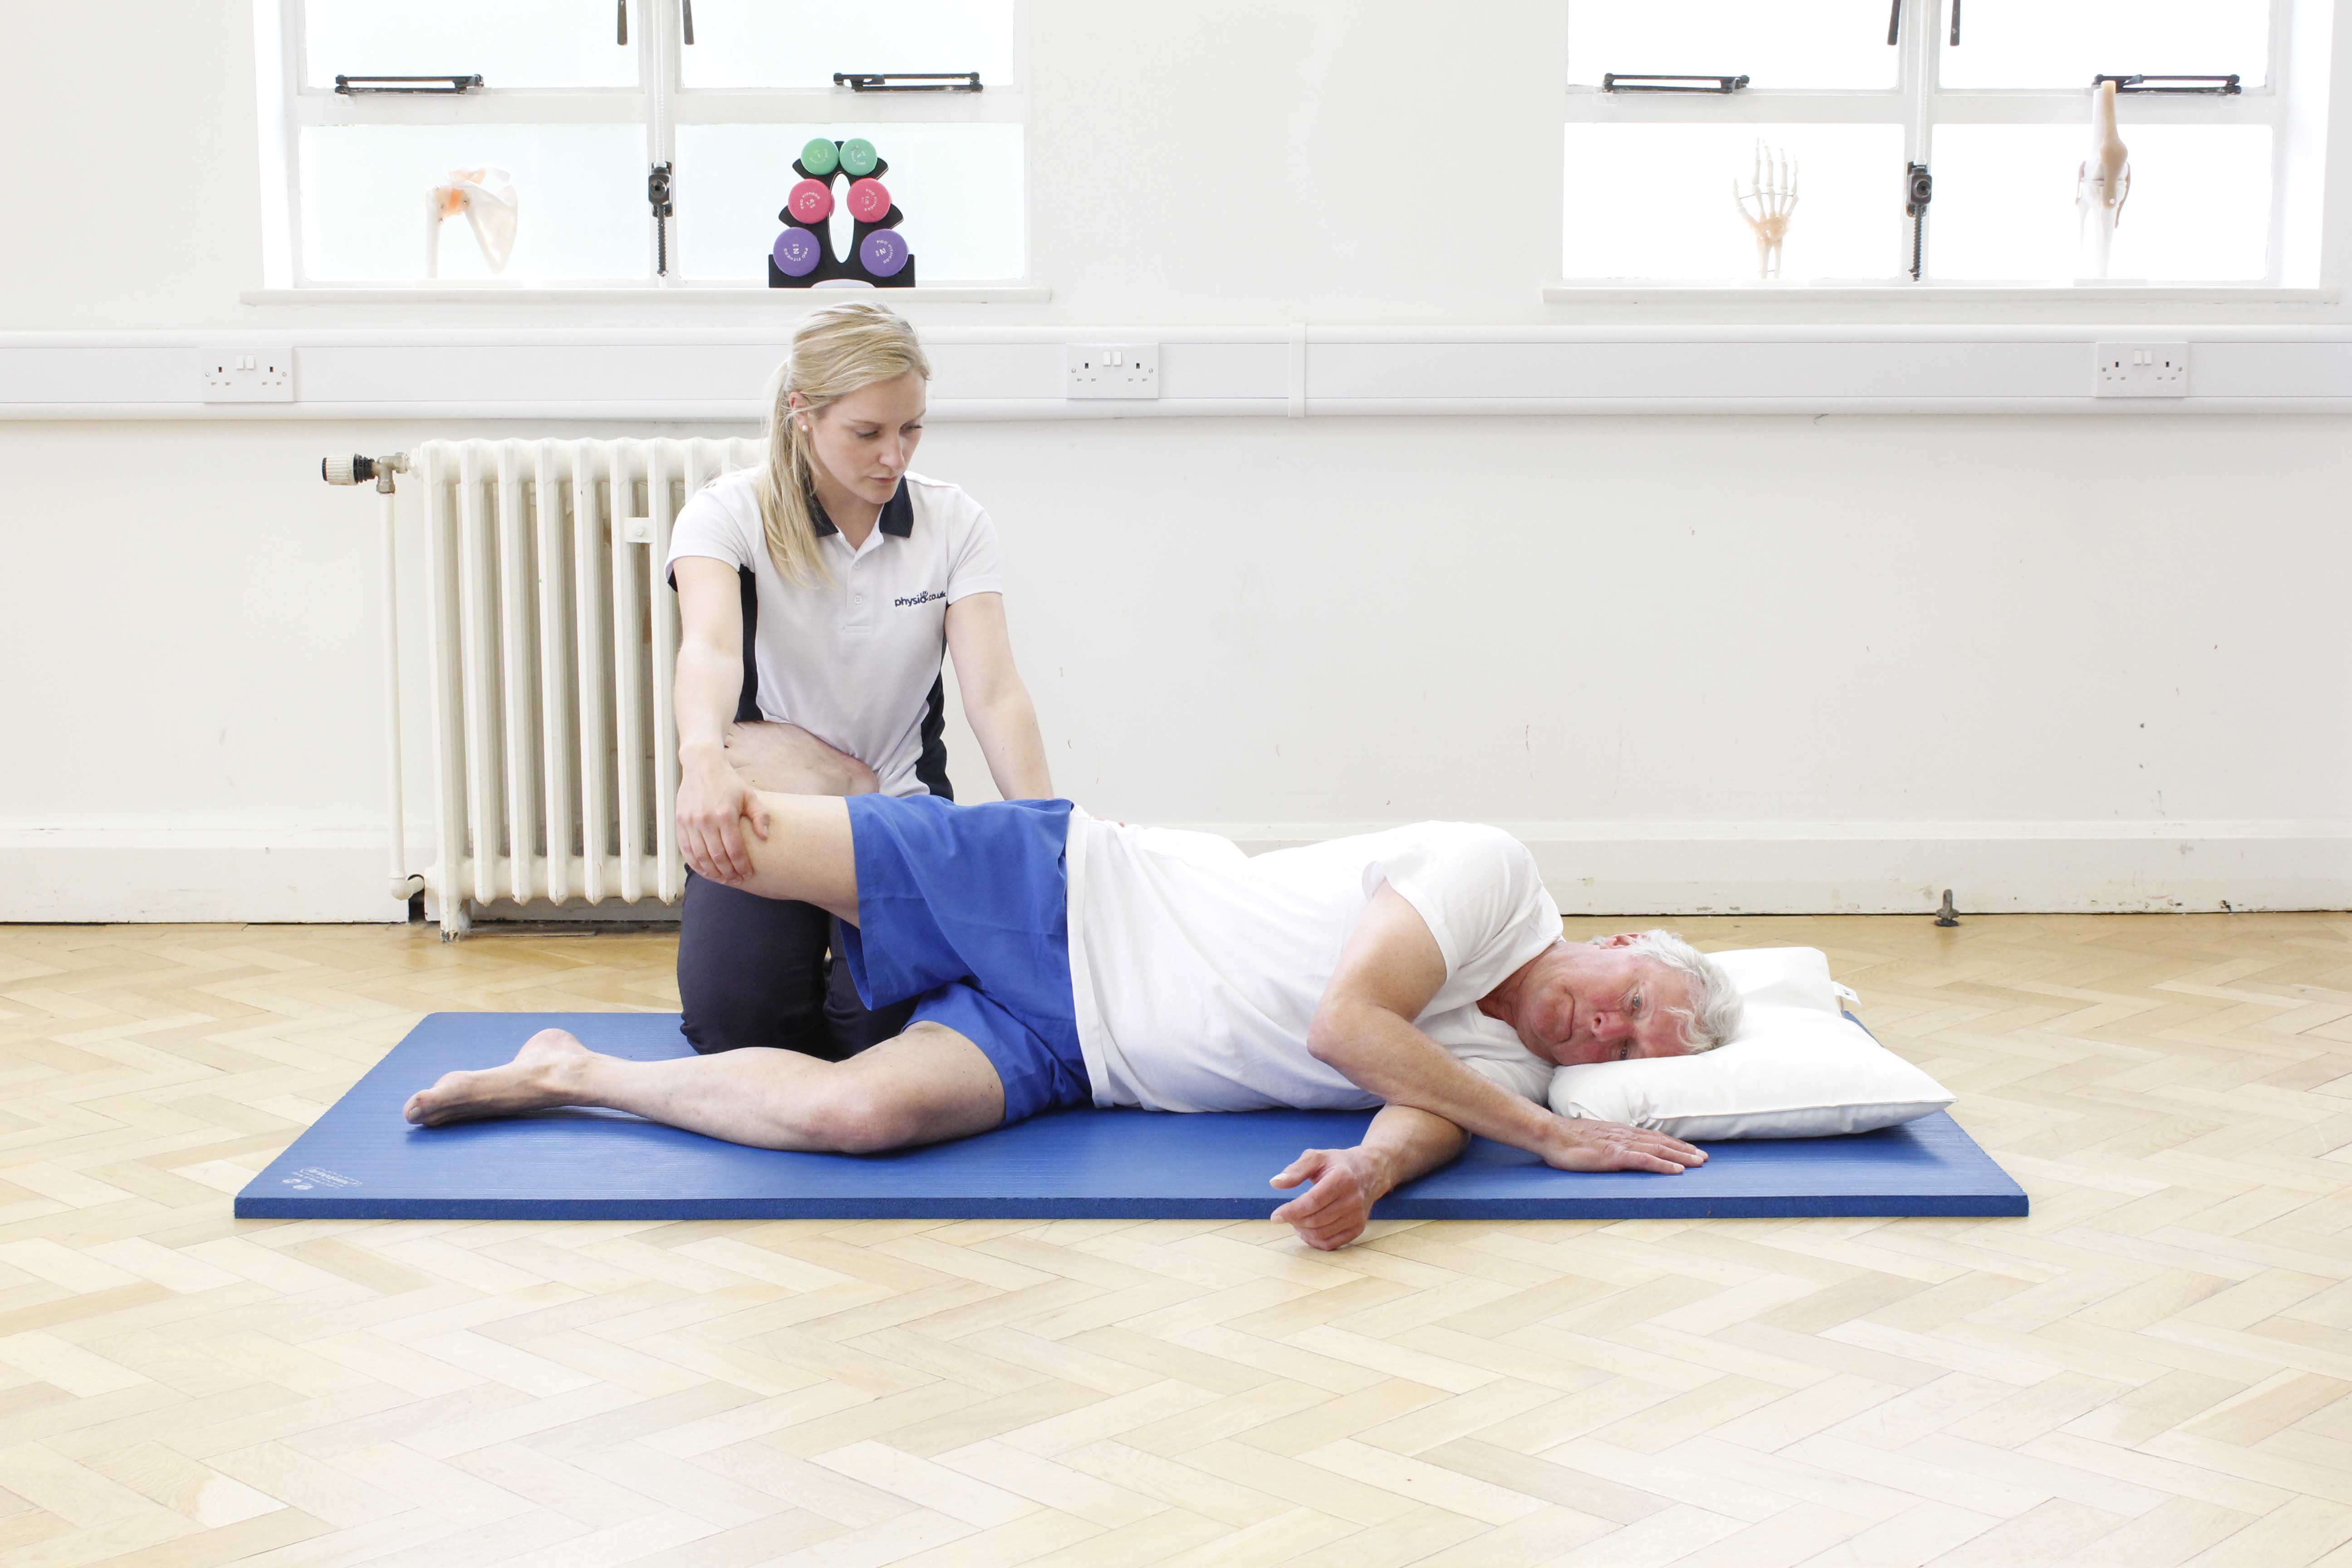 Stertches and mobilisations of the hip and knee joint to relieve pain and lower muscle tone